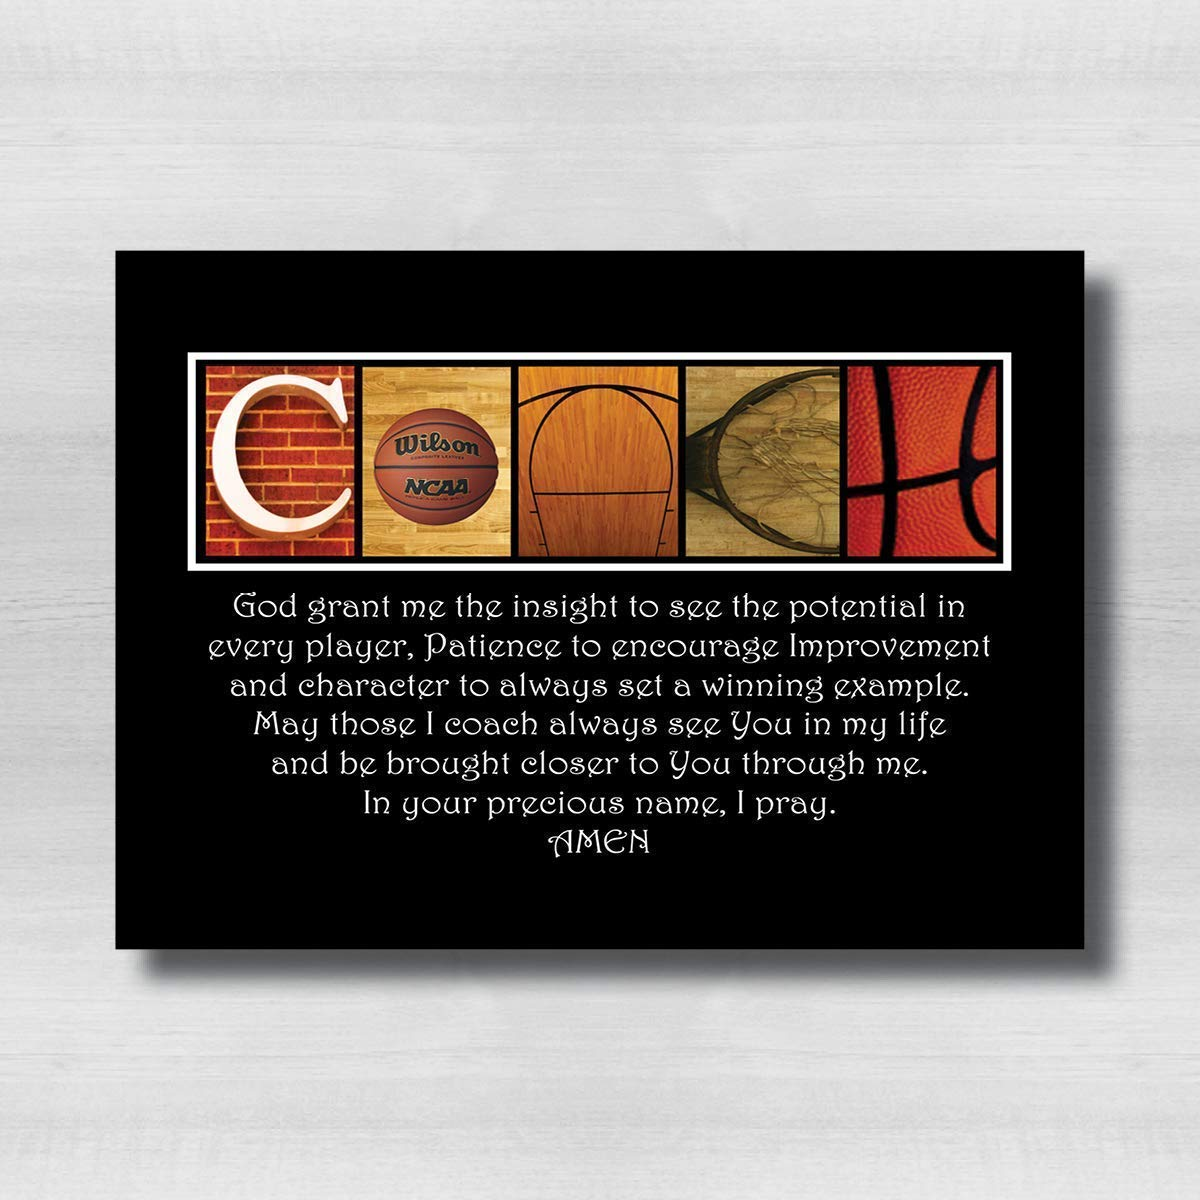 Basketball Deluxe Coaches Prayer Gift 8x10 Inexpensive Coach for